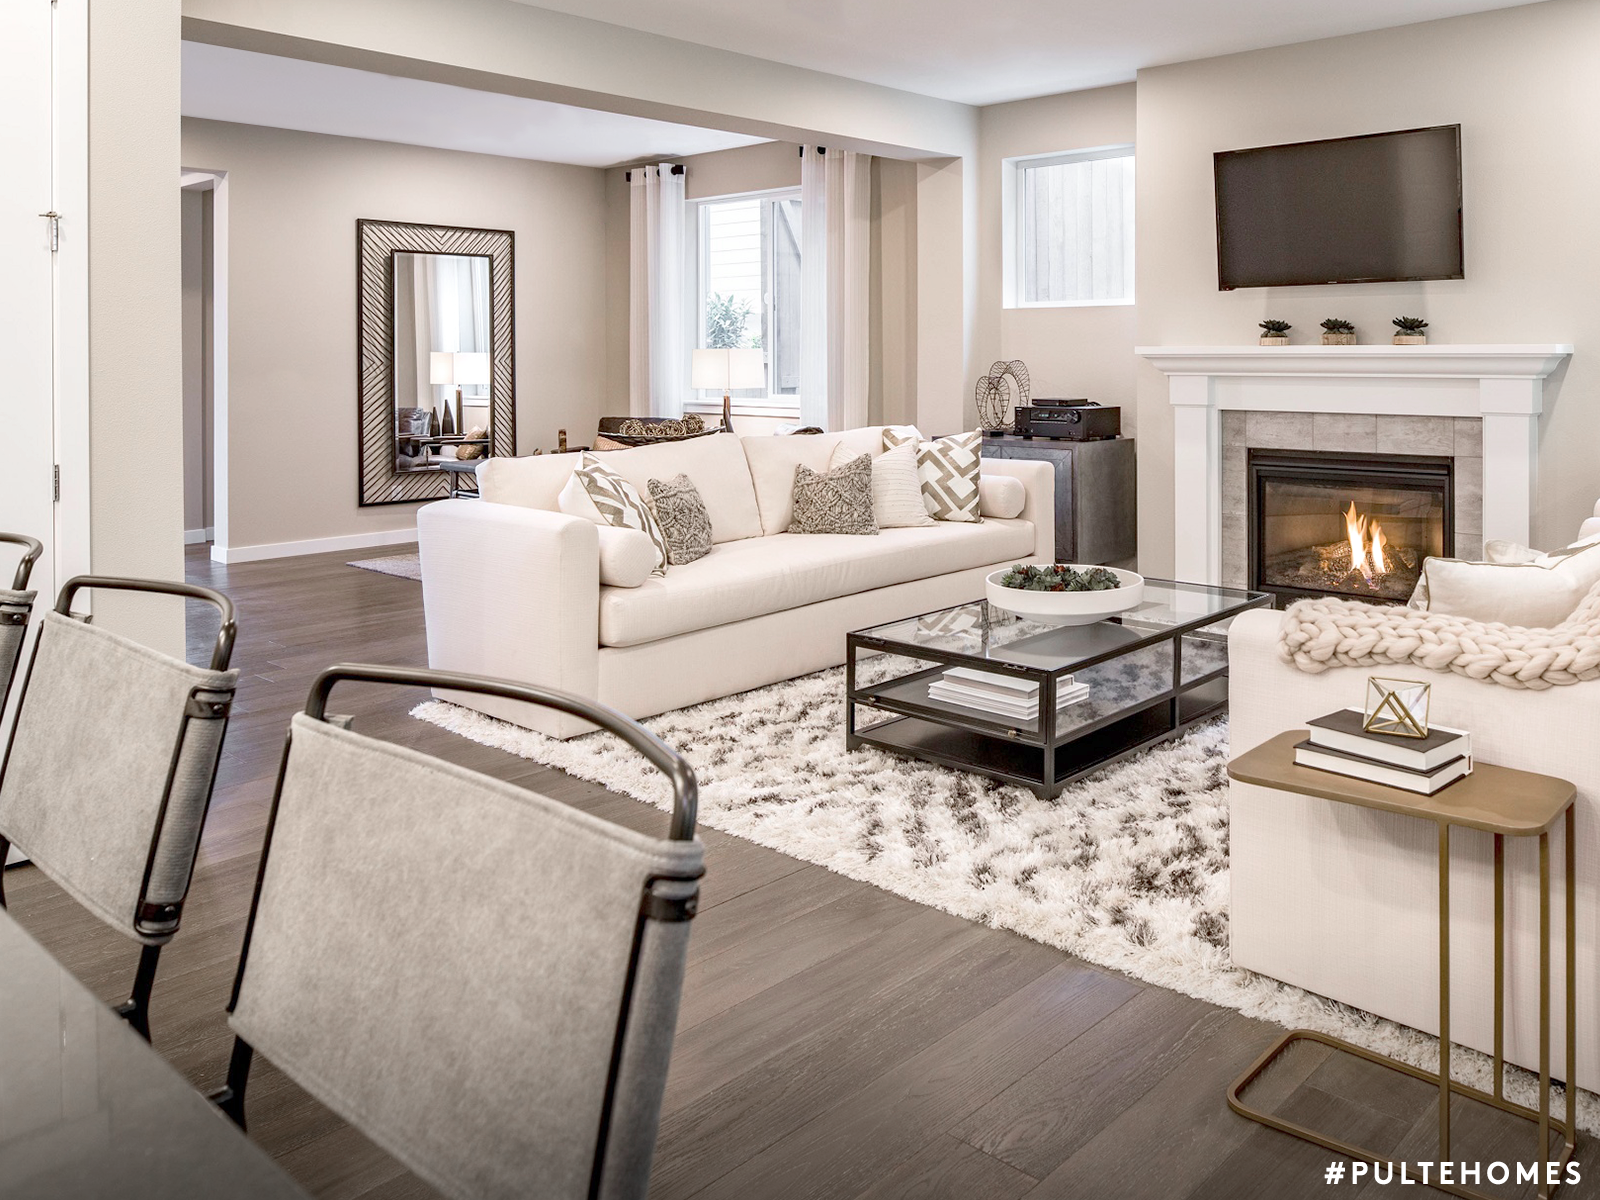 Make Your Home S Space Go Further With An Open Concept Floor Plan Pulte Homes Open Concept Living Room Condo Living Room Unique Living Room Furniture #open #floor #plan #living #room #ideas